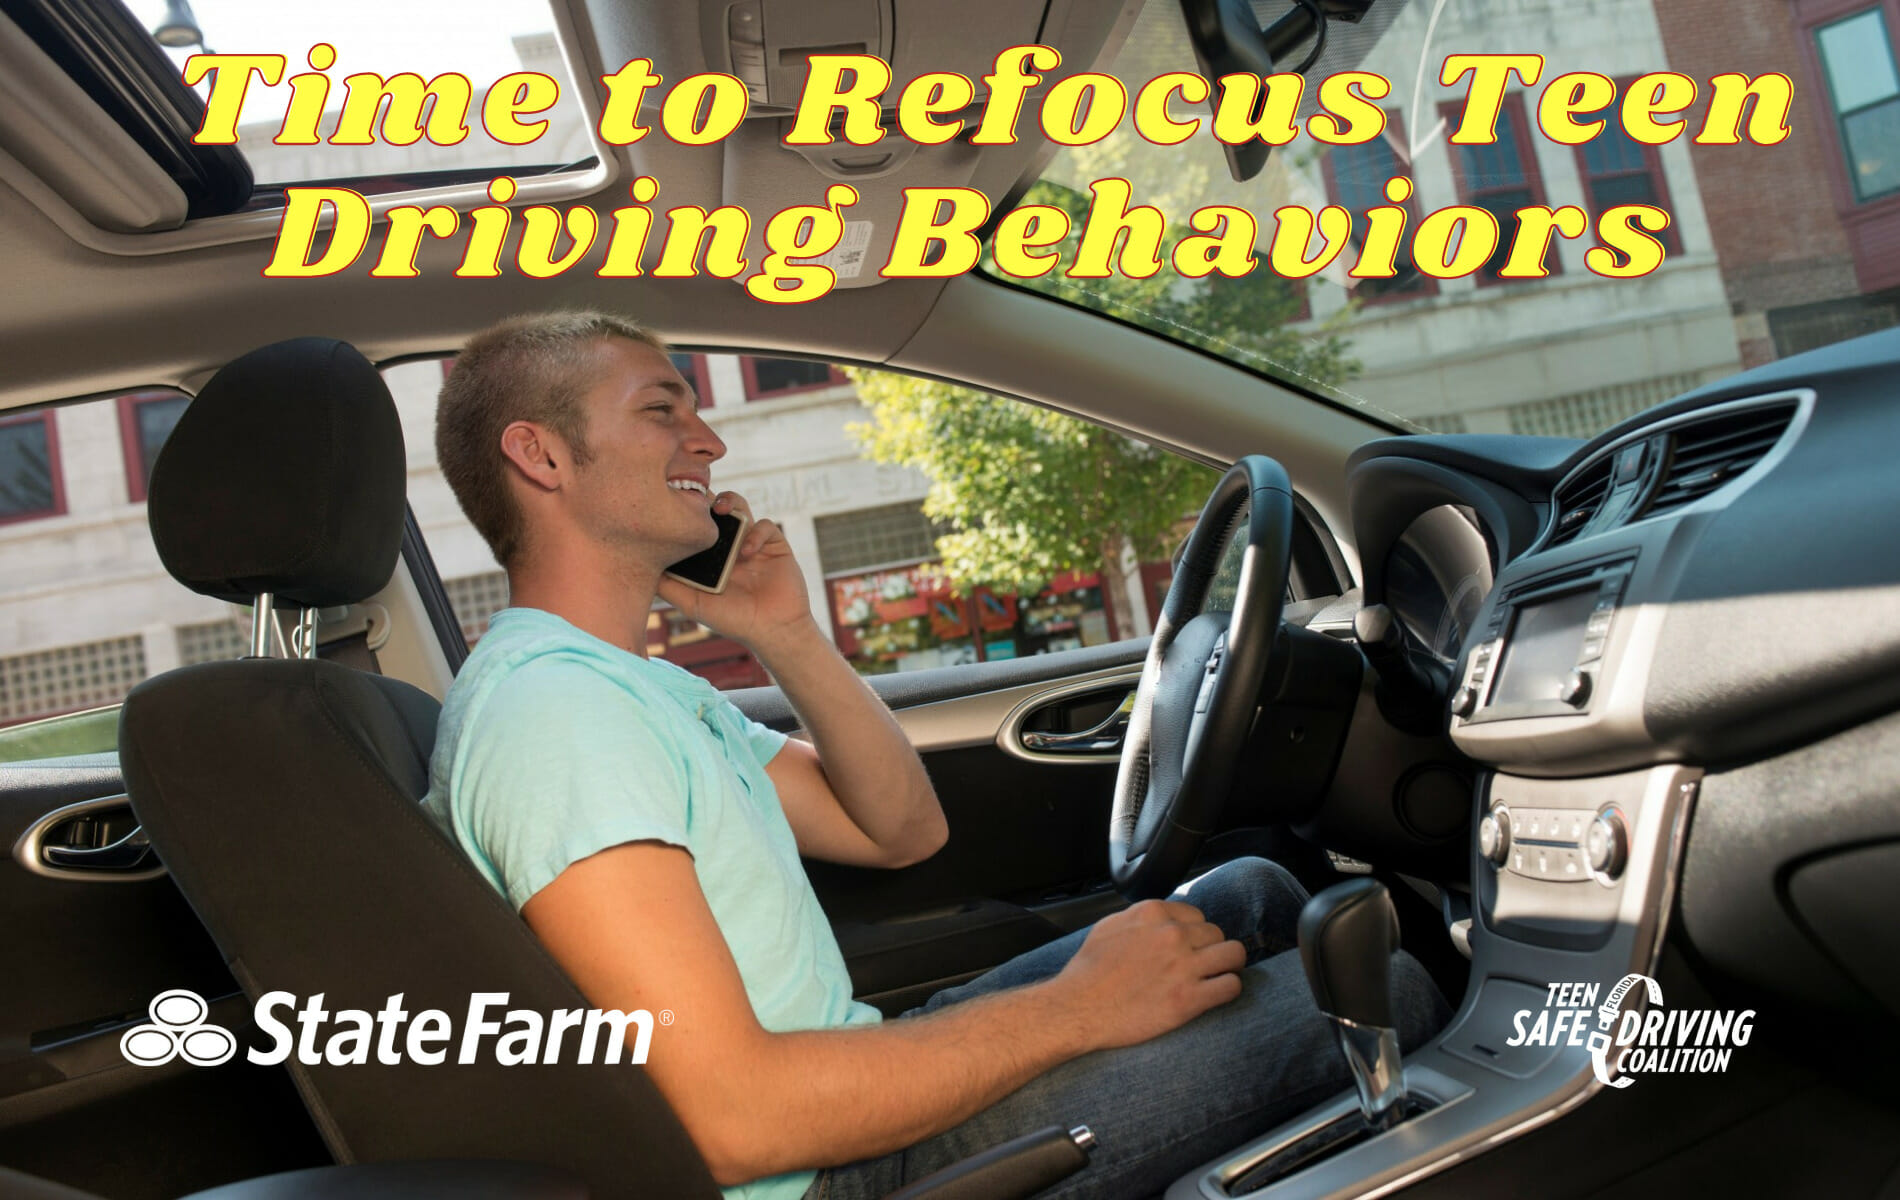 Time to Refocus Teen Driving Behaviors